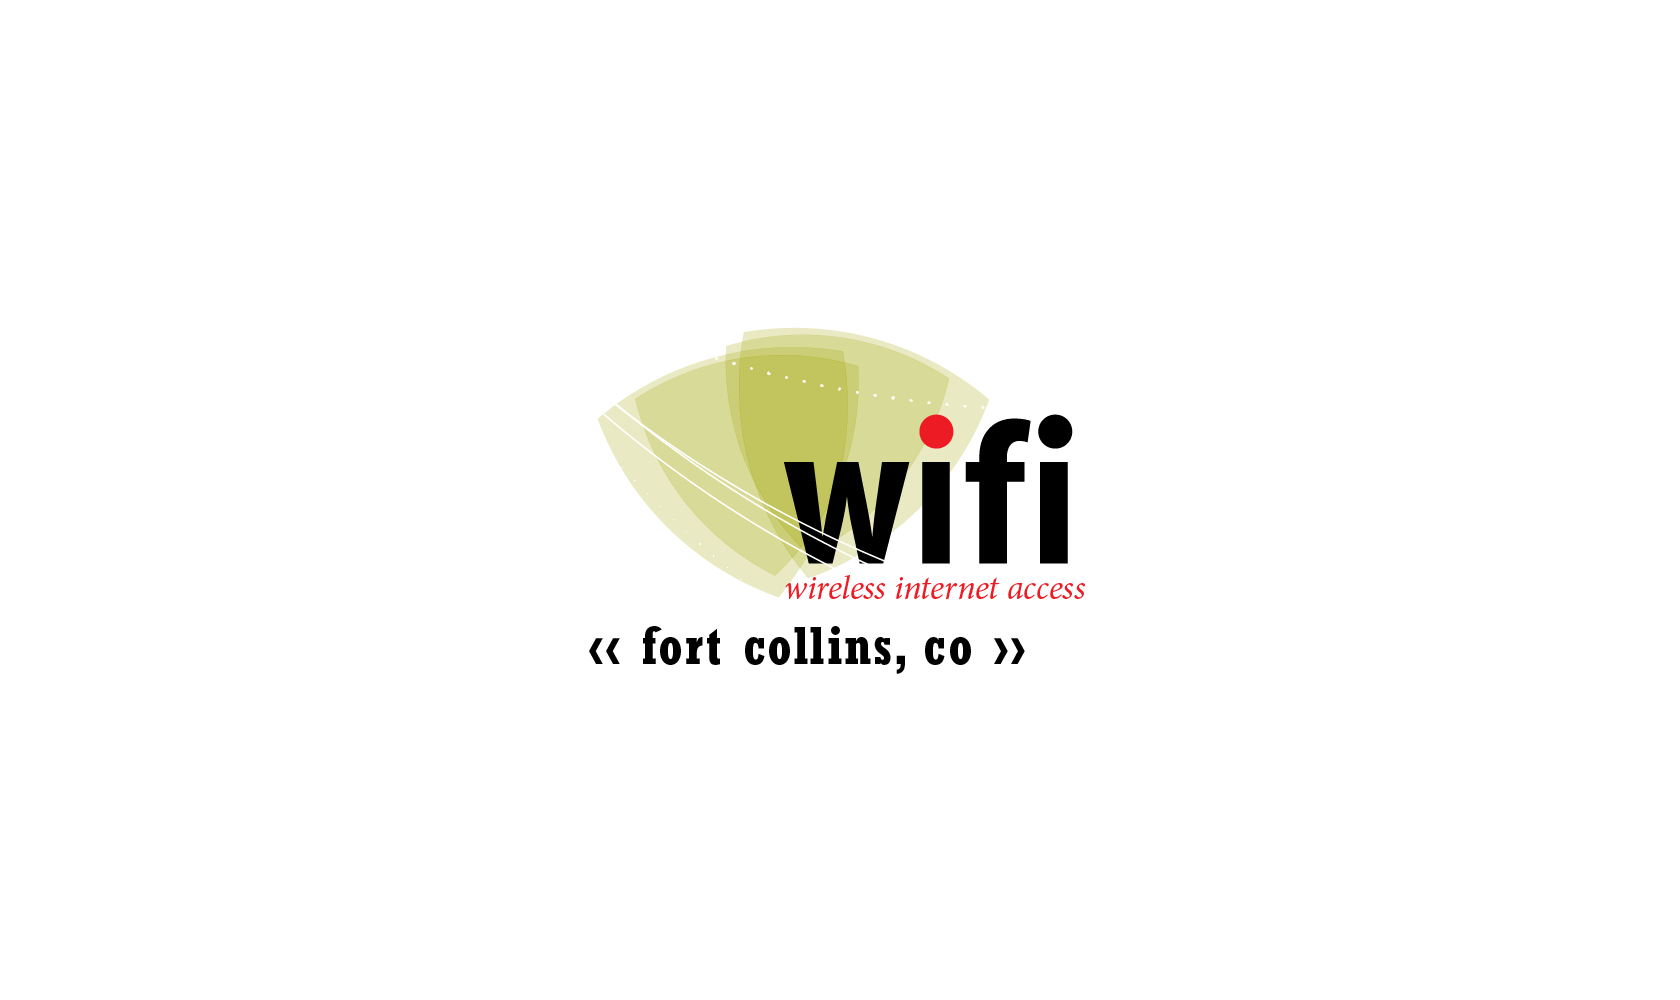 Bill Rogers Design - City of Fort Collins, Colorado - Wifi Logo - Logo Design - Brand Identity Design